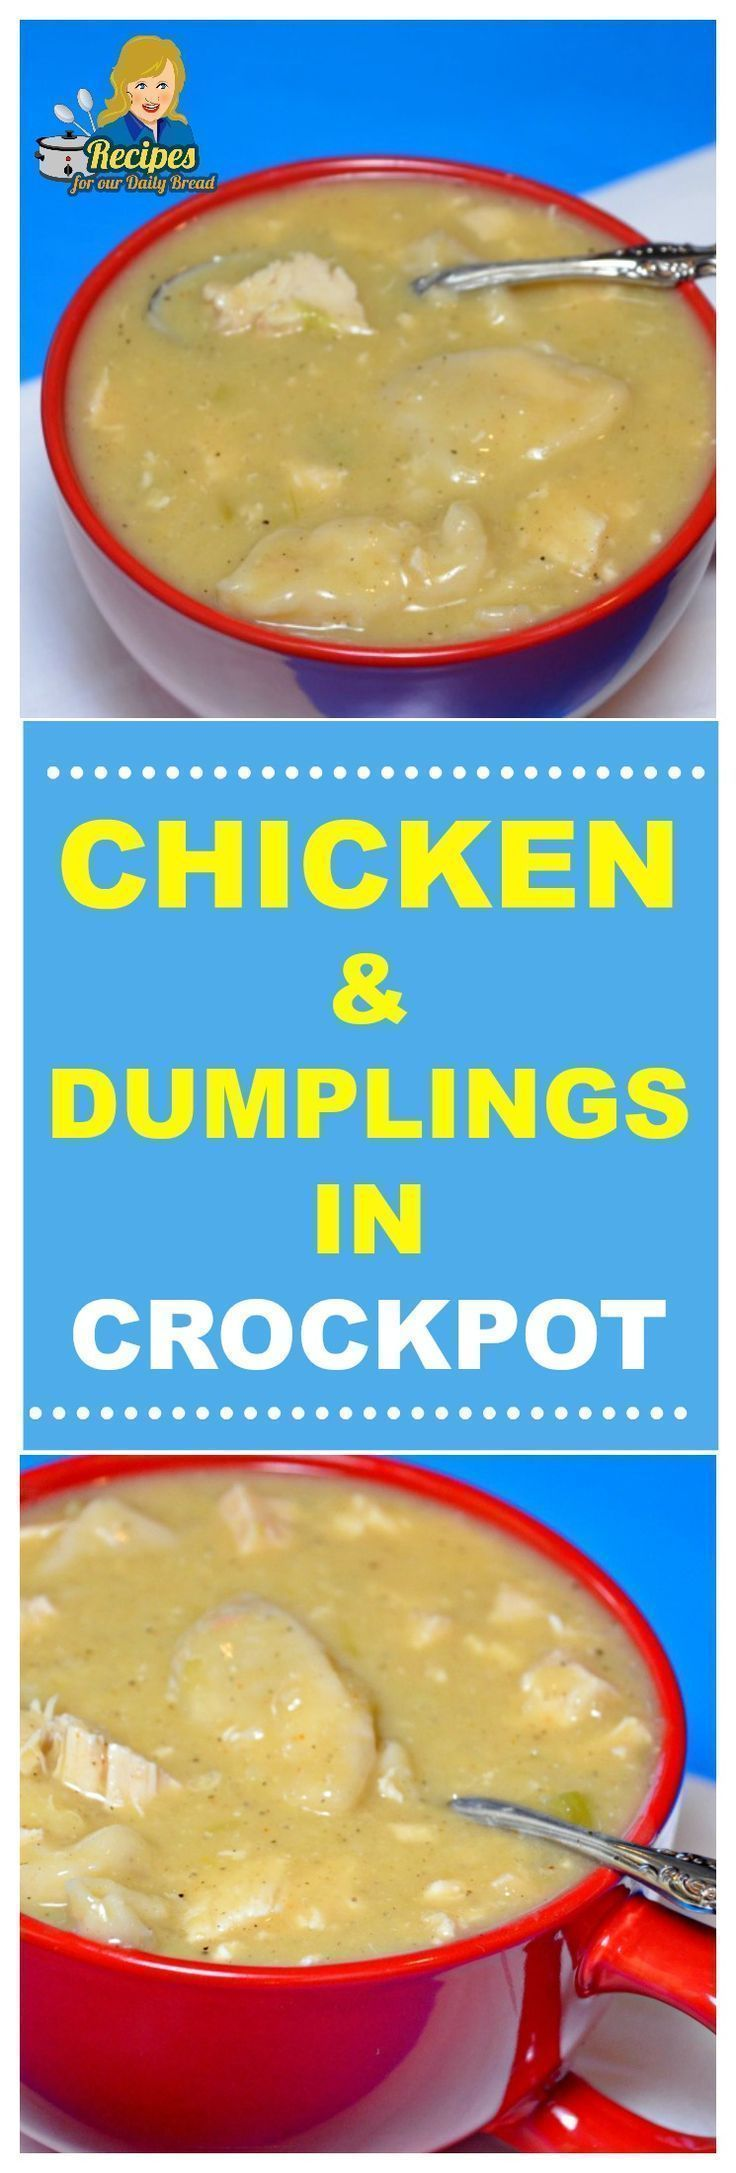 CHICKEN & DUMPLINGS COMPLETELY MADE IN YOUR CROCKPOT #chickendumplingscrockpot Easy and Delicious CROCK POT CHICKEN DUMPLINGS Crock Pot Chicken & Dumplings Are So Much Easier To Make Than The Homemade Version. #crockpot #slowcooker #chicken #soup #chickendumplingscrockpot CHICKEN & DUMPLINGS COMPLETELY MADE IN YOUR CROCKPOT #chickendumplingscrockpot Easy and Delicious CROCK POT CHICKEN DUMPLINGS Crock Pot Chicken & Dumplings Are So Much Easier To Make Than The Homemade Version. #crockpot #slow